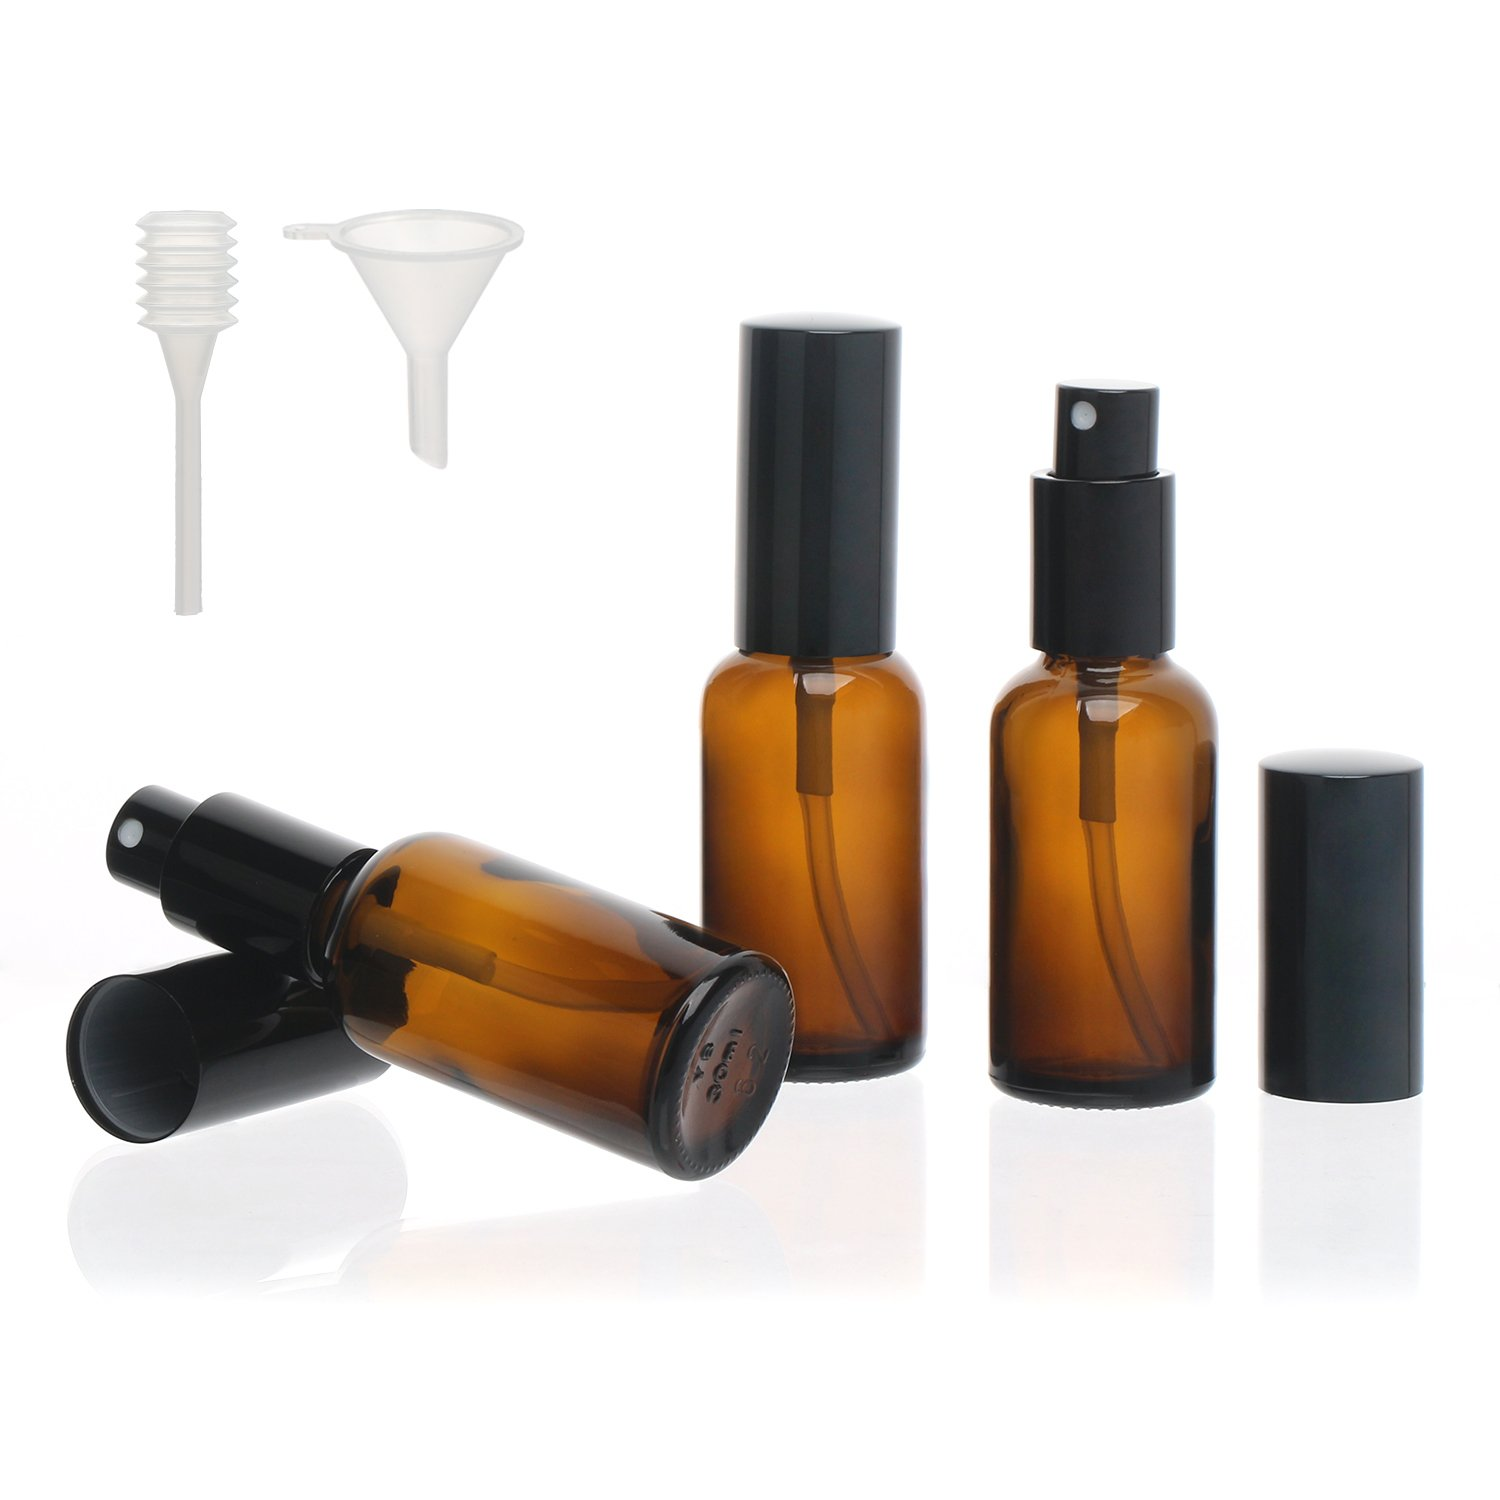 Segbeauty Amber Glass Spray Bottle, 3pcs Fine Mist Travel Bottle Set 30mL Pump Sprayer with Funnel, Empty Cosmetic Travel Container Water Mister for Essential Oil Perfume